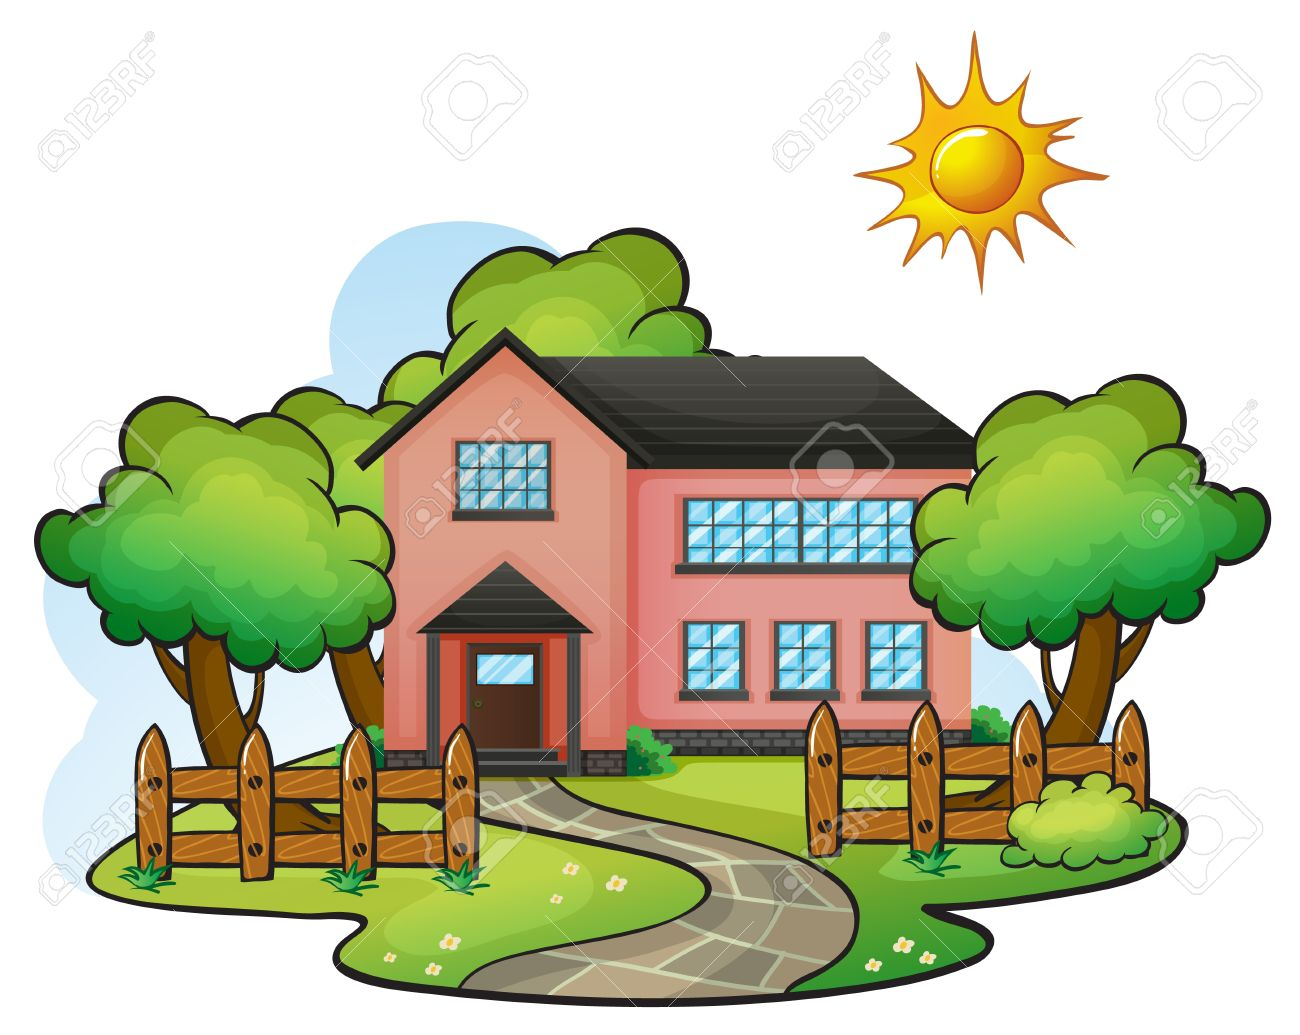 Home clipart scenery. Collection of free download